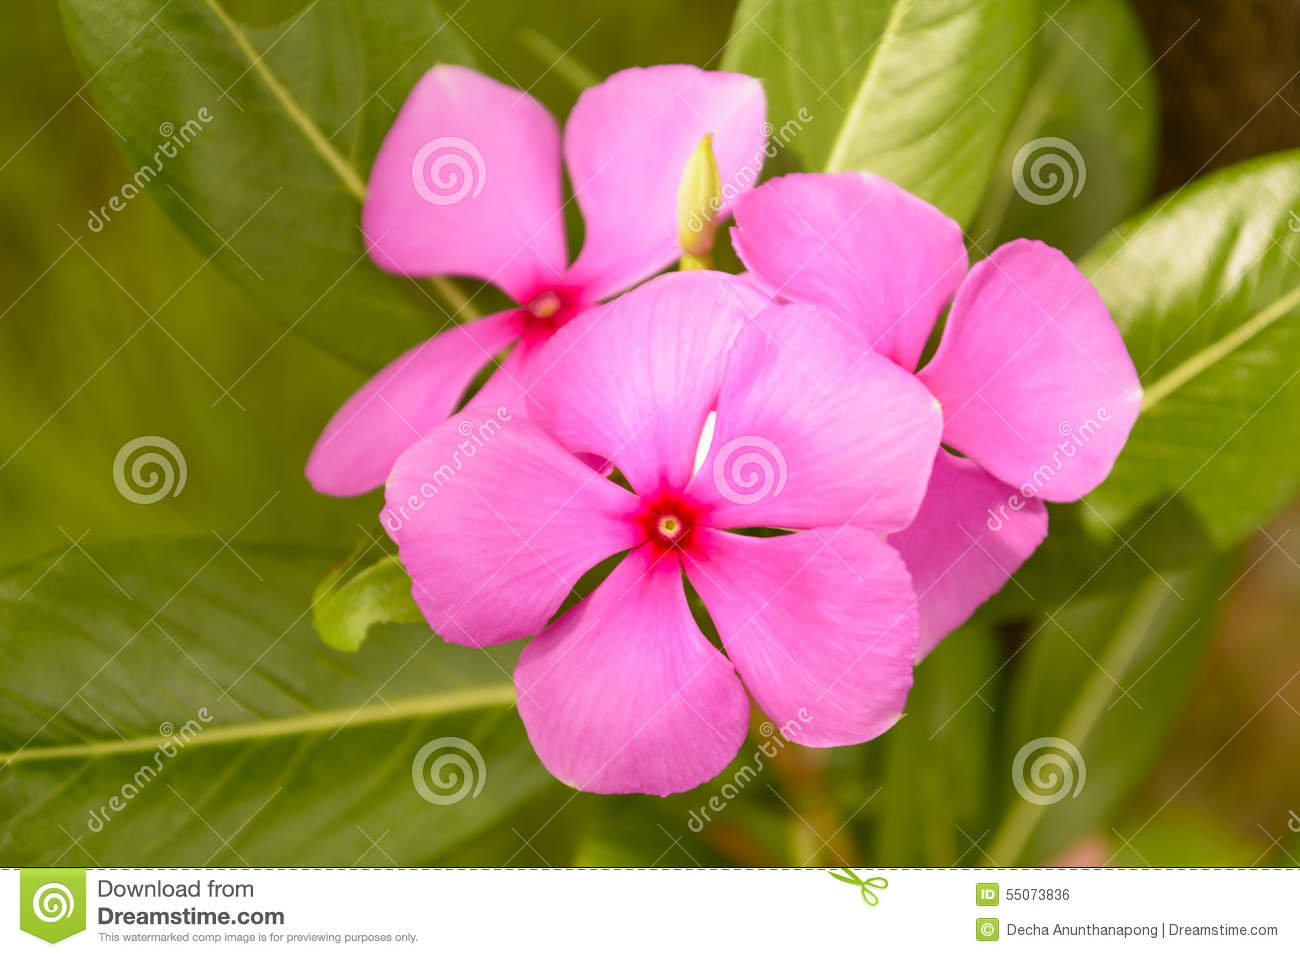 Catharanthus roseus stock photo. Image of blossom, pink - 55073836